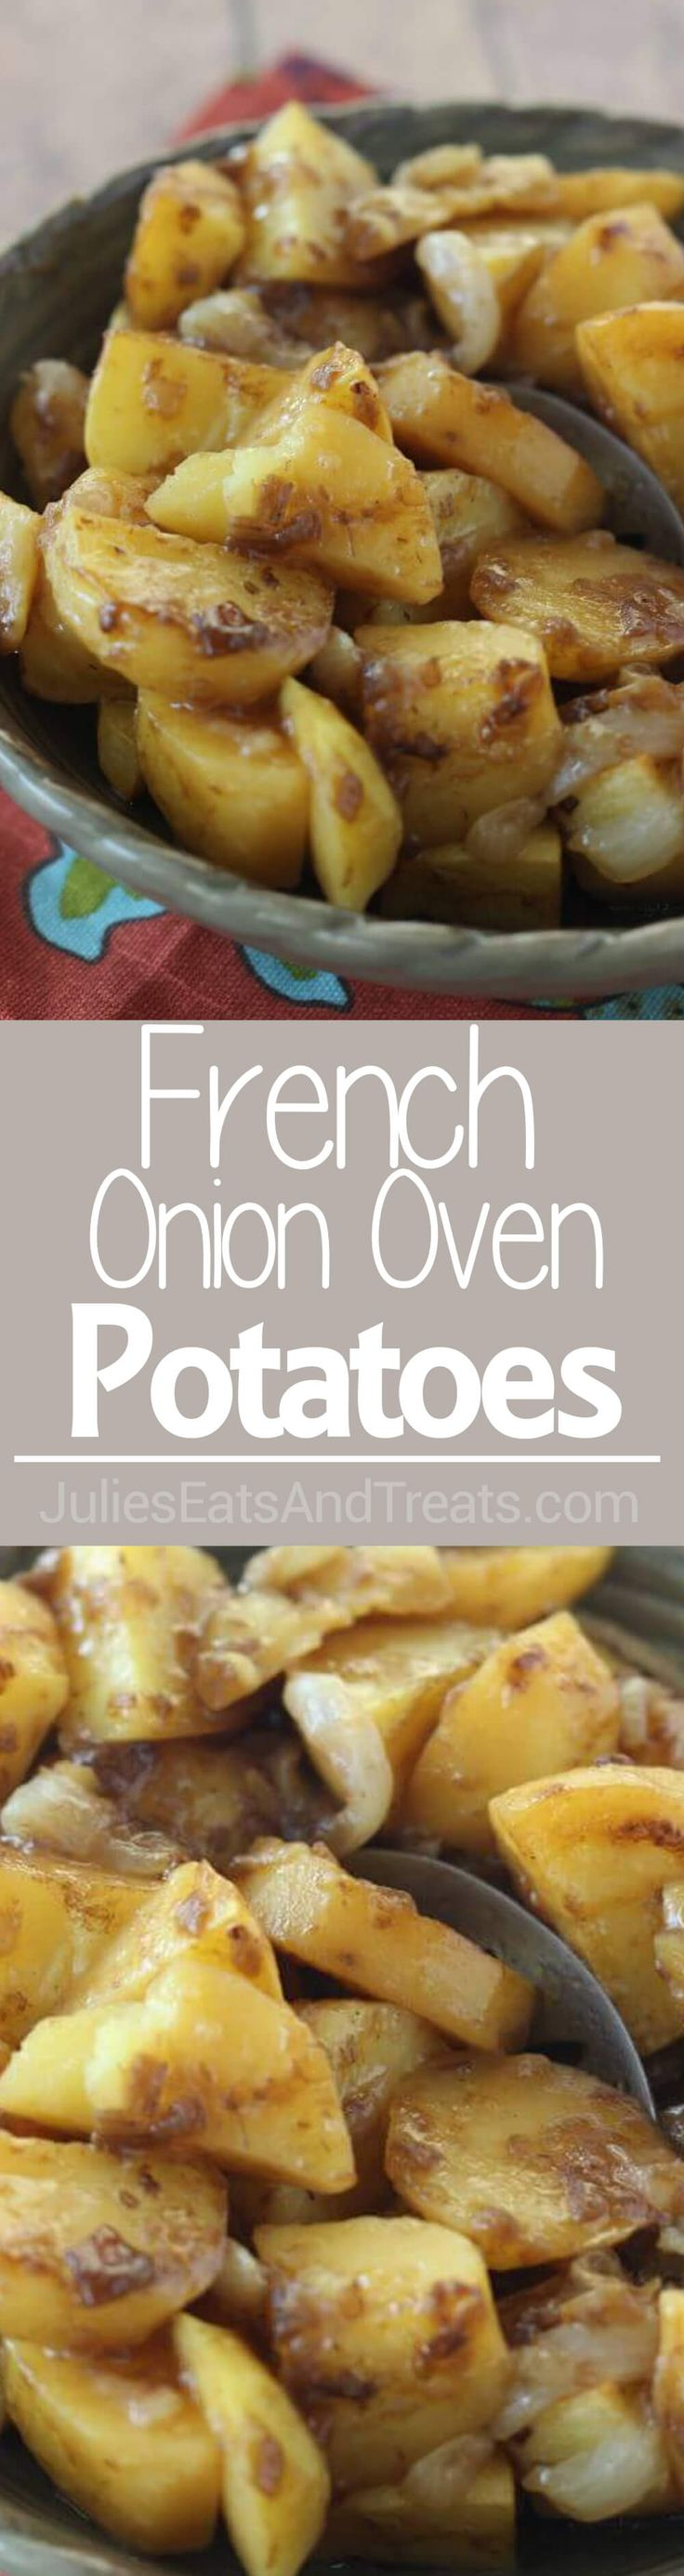 French Onion Oven Potatoes Recipe - A super easy potato side dish roasted in the oven and packed with flavor! ~ http://www.julieseatsandtreats.com